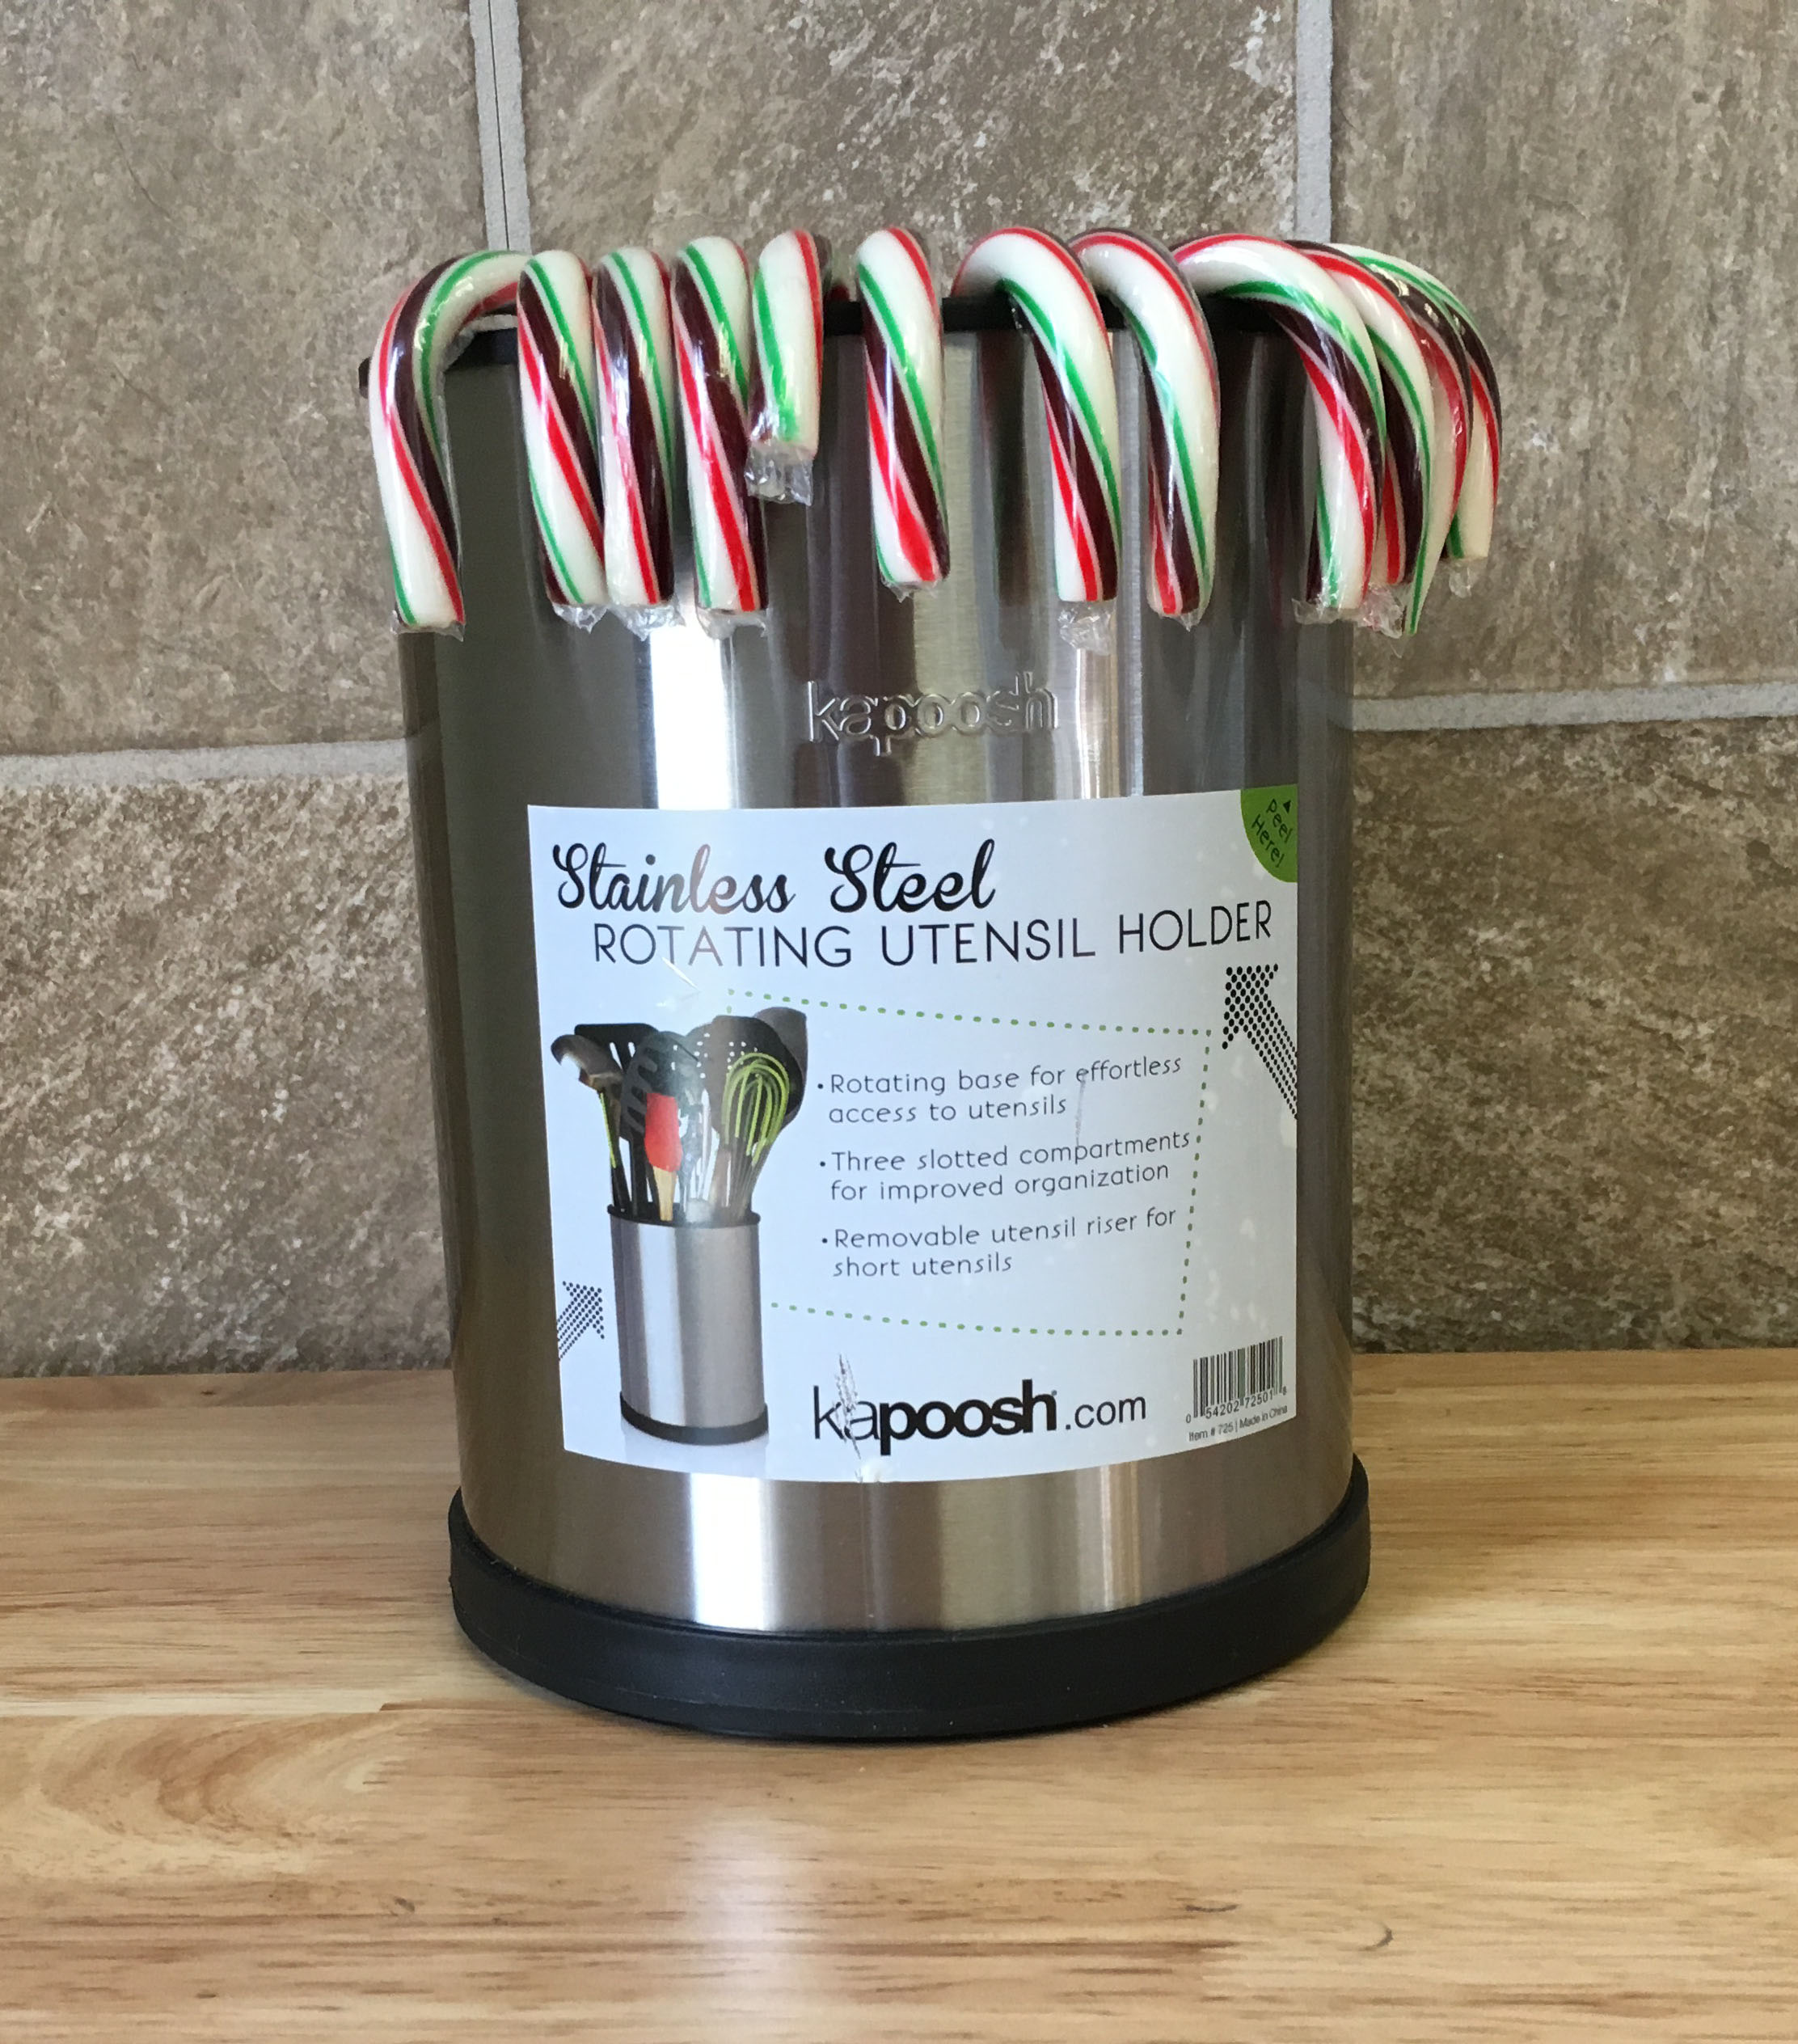 Candy Canes in Kapoosh Rotating Utensil Holder